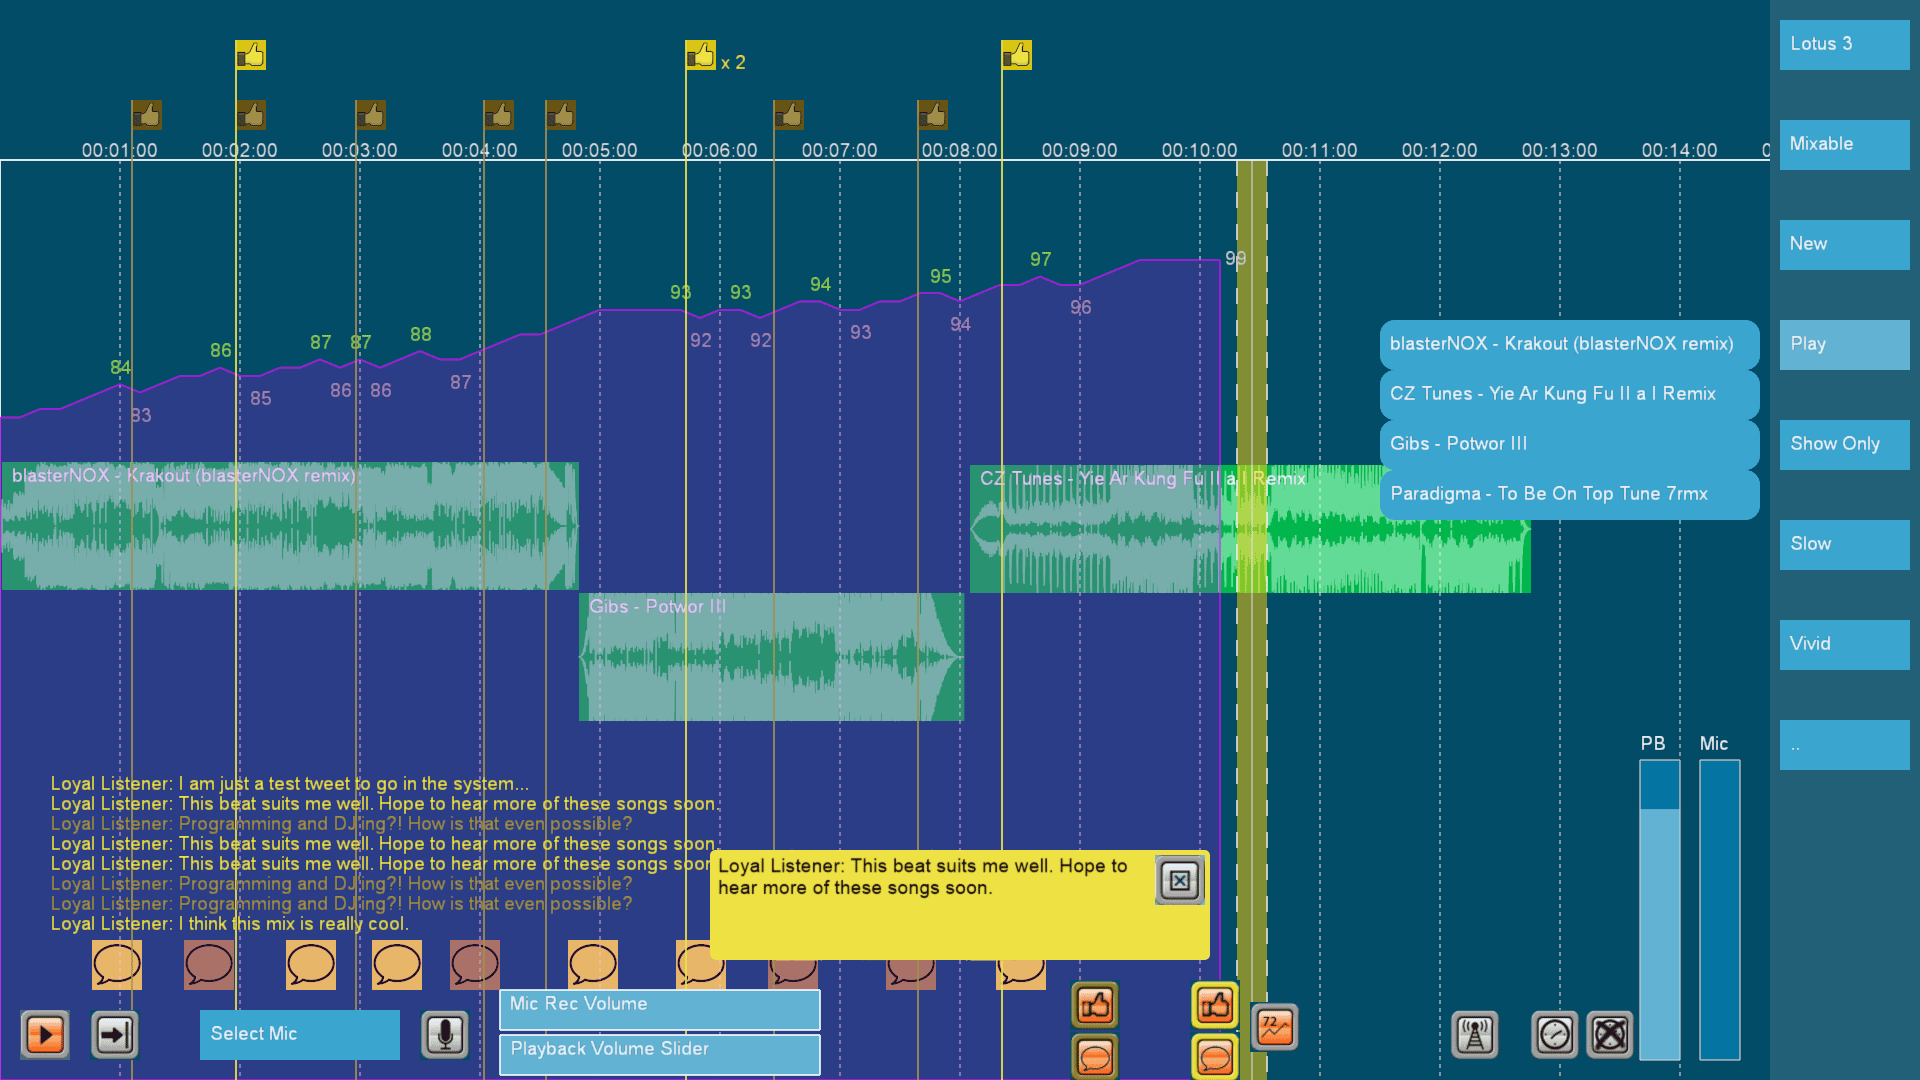 A screen-shot of the interface used in four two-hour live shows (shown here with mock-feedback). This version support simplified positive feedback, along with user comments and a listener histogram. All of the feedback can be toggled on/off at any time during a performance. The system distinguishes between two types of listeners (gold / bronze) who represent those known and not-known to the DJ, respectively.